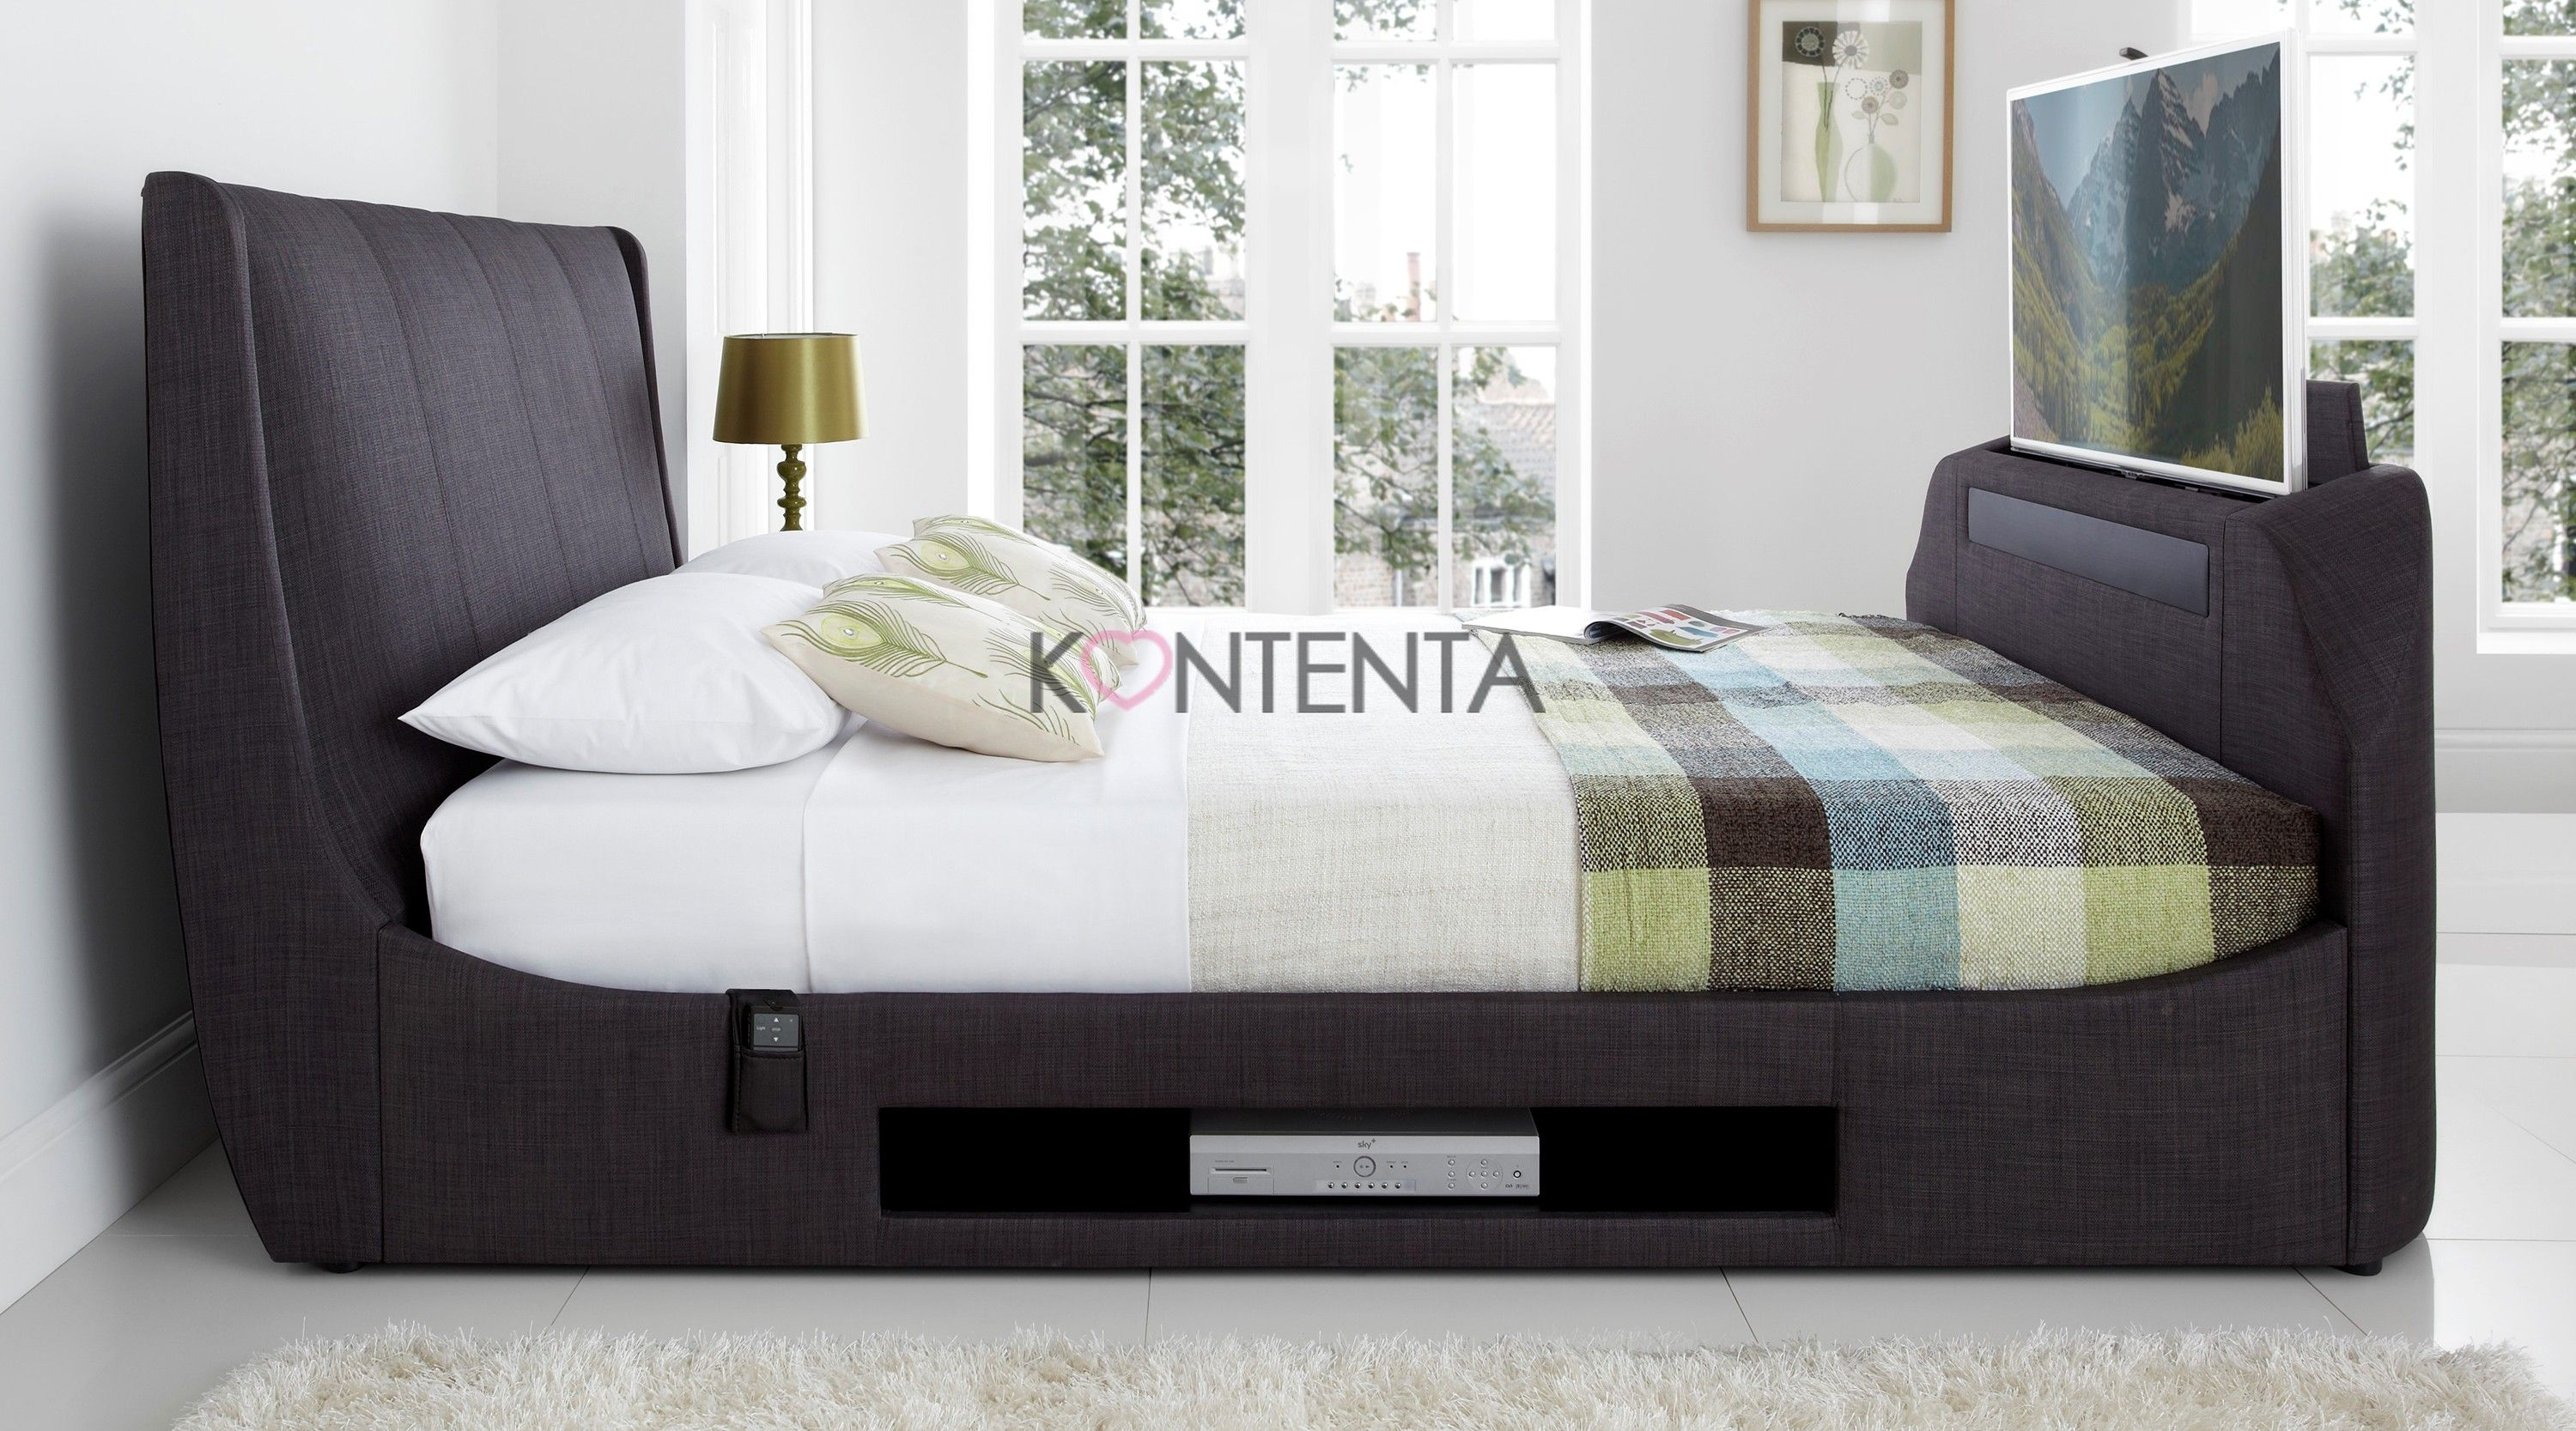 Kaydian sommer bed frame with sound bar and sub woofer which kaydian sommer bed frame with sound bar and sub woofer which offers amazing surround sound jeuxipadfo Images